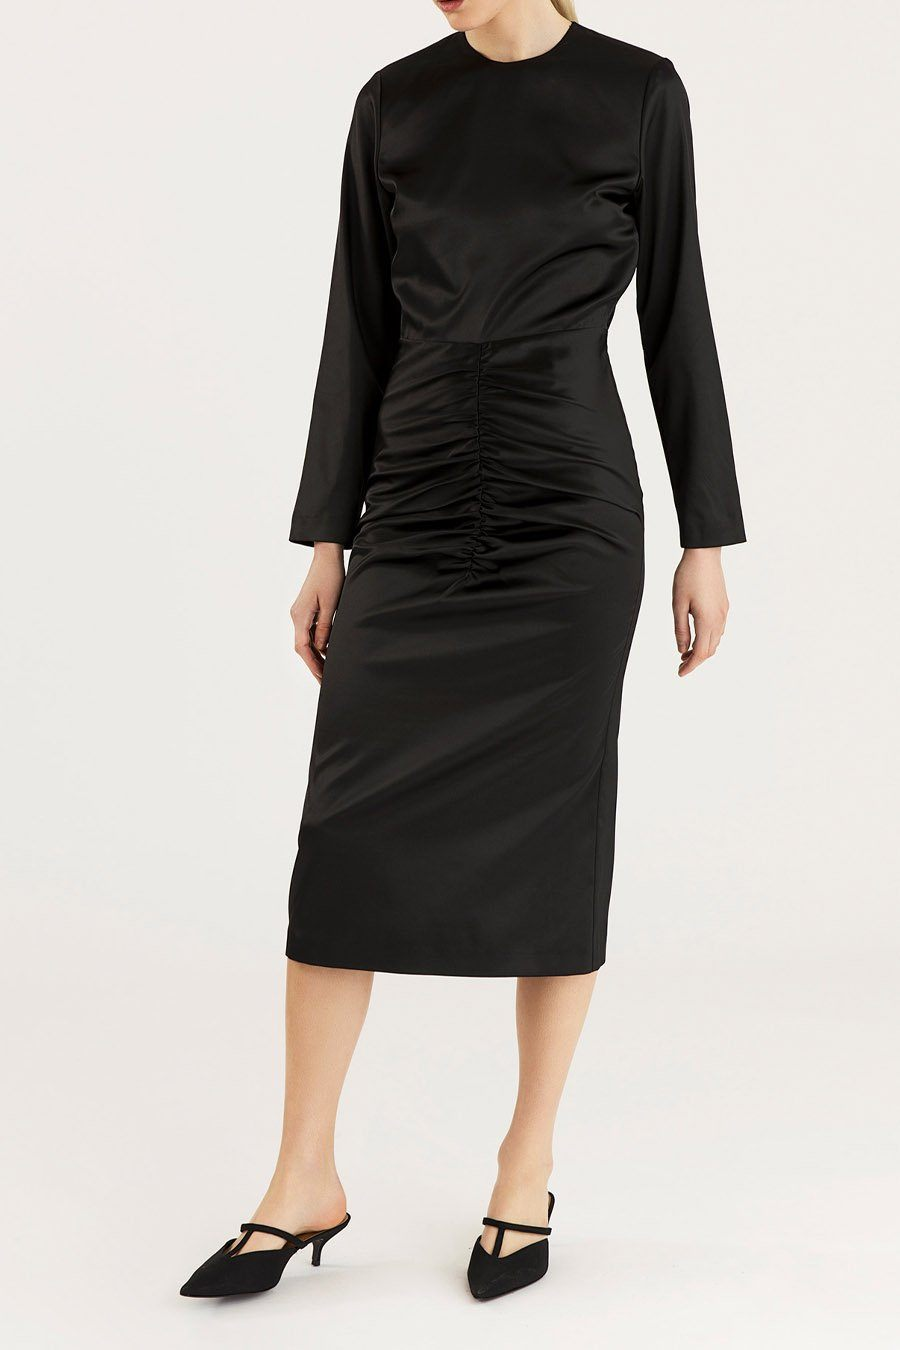 MELANIE DRESS - BLACK Dress Stylein